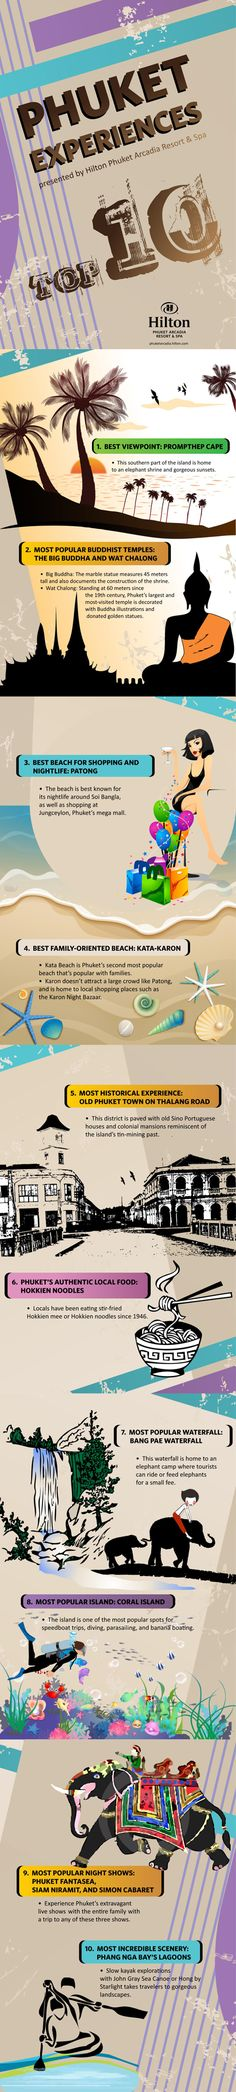 Hilton Phuket Arcadia Resort & Spa Showcases The Best Of Phuket With New Infographic #travel #infographic